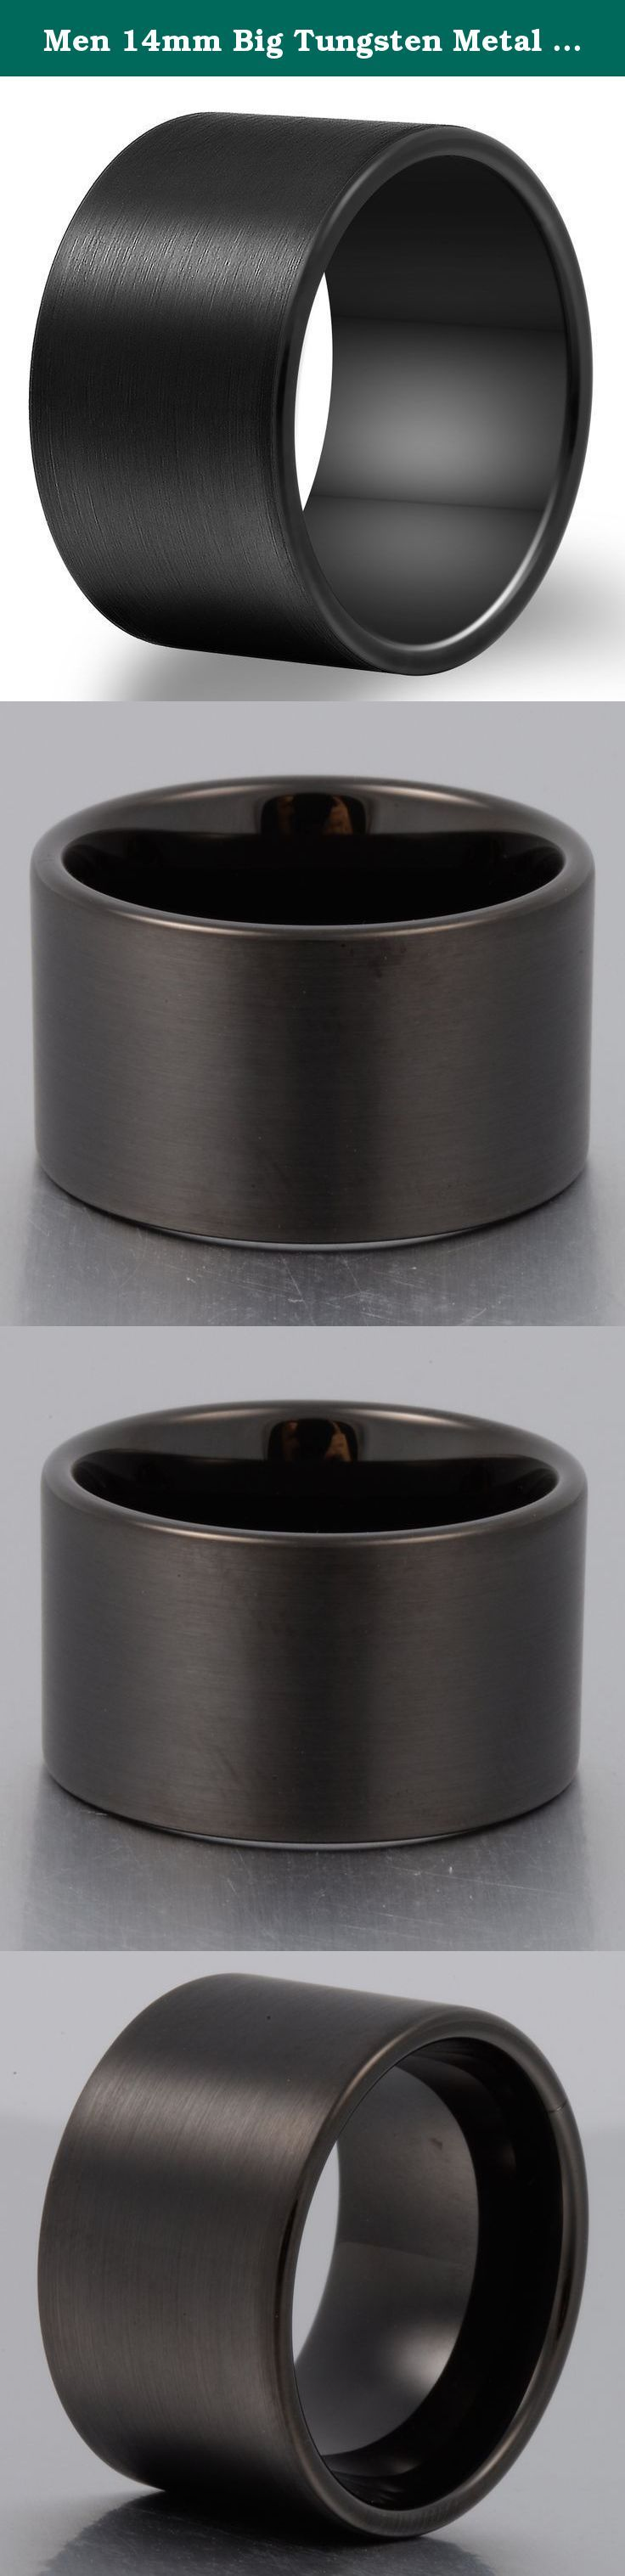 Men 14mm Big Tungsten Metal Ring Black Wedding Engagement Band Flat Top Pipe Cut Matte Finish Comfort Fit Size 8. As a heavy metal, tungsten carbide is a very hard and dense with hardness between 8.5 and 9.5 on the hardness scale (Diamonds come to a 10). Its density allows tungsten to be used in jewelry as an alternative to gold or platinum. Tungsten carbide is about 10 times harder than 18k Gold, 4 times harder than titanium stainless steel, and it never fade, deform and always keep...